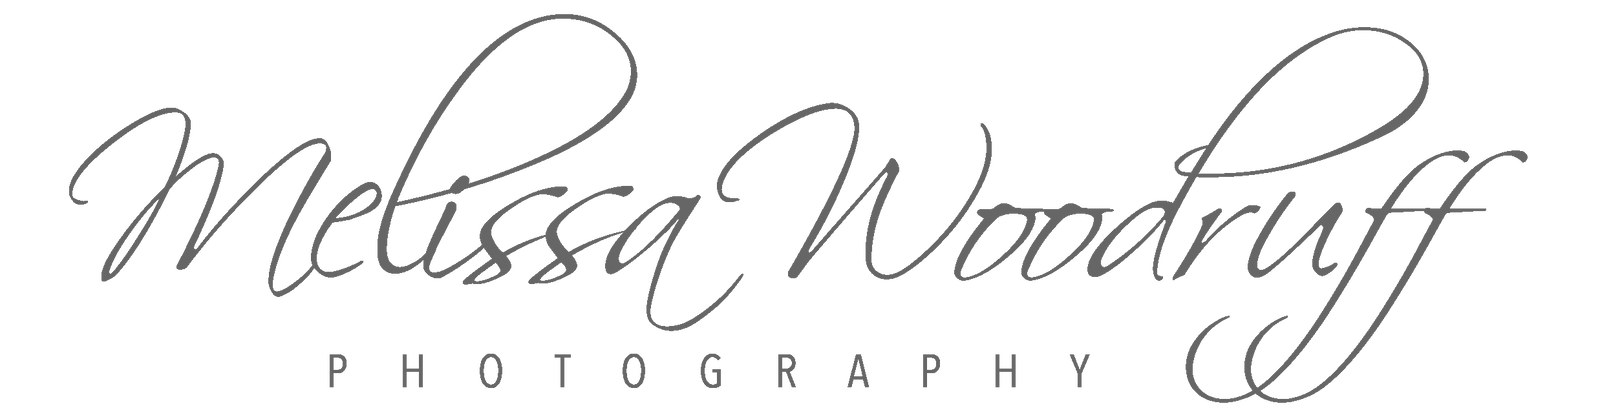 Melissa Woodruff Photography Logo